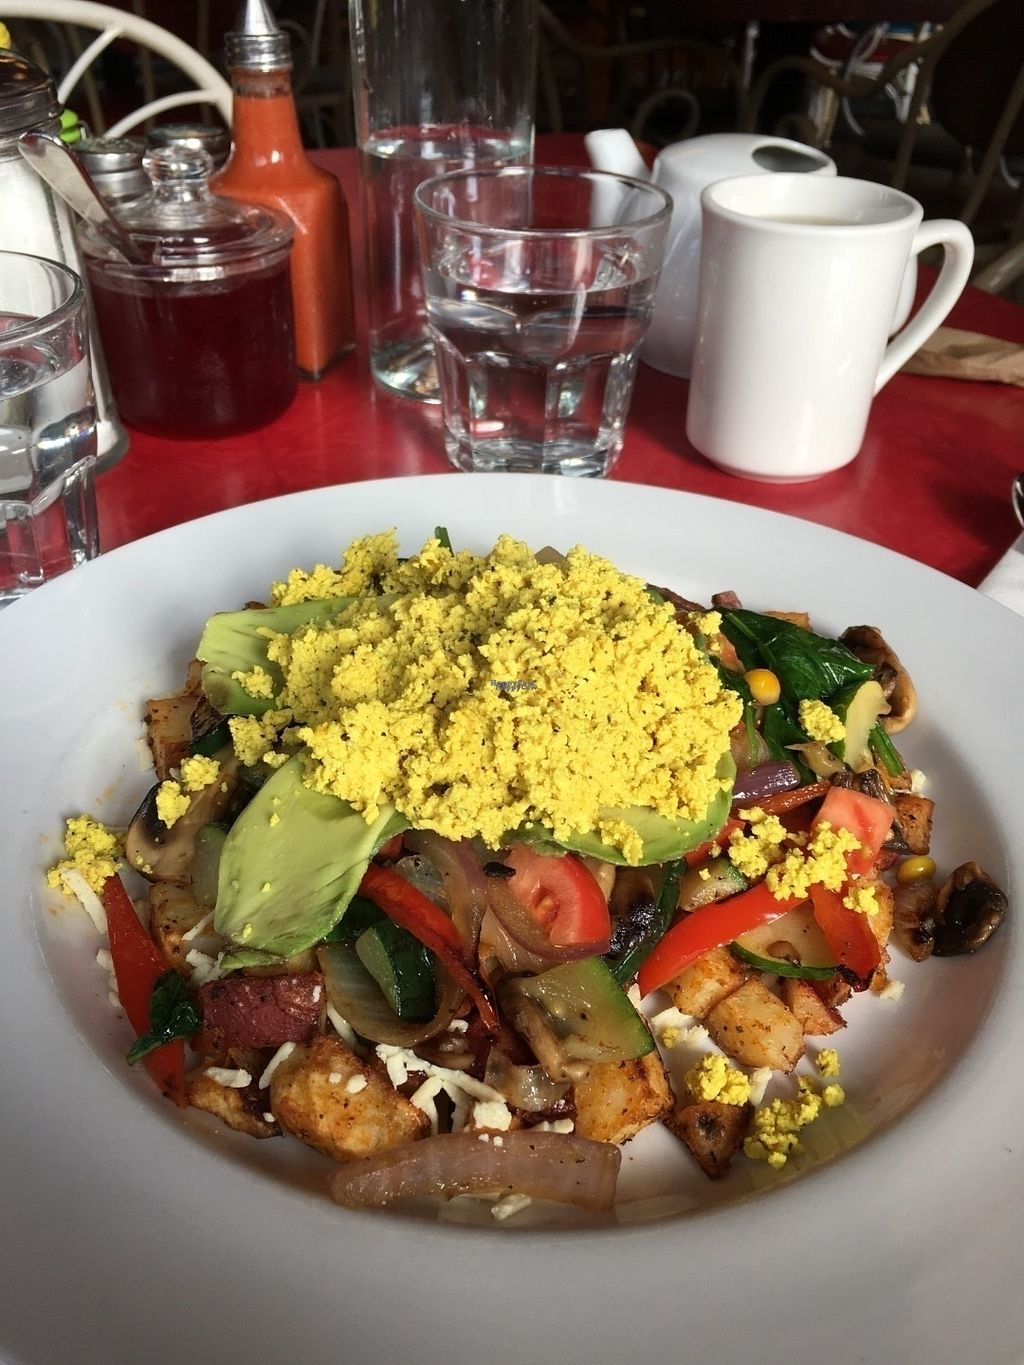 """Photo of The Gumboot Restaurant  by <a href=""""/members/profile/vegan%20frog"""">vegan frog</a> <br/>Tofu scramble <br/> October 22, 2016  - <a href='/contact/abuse/image/71500/183521'>Report</a>"""